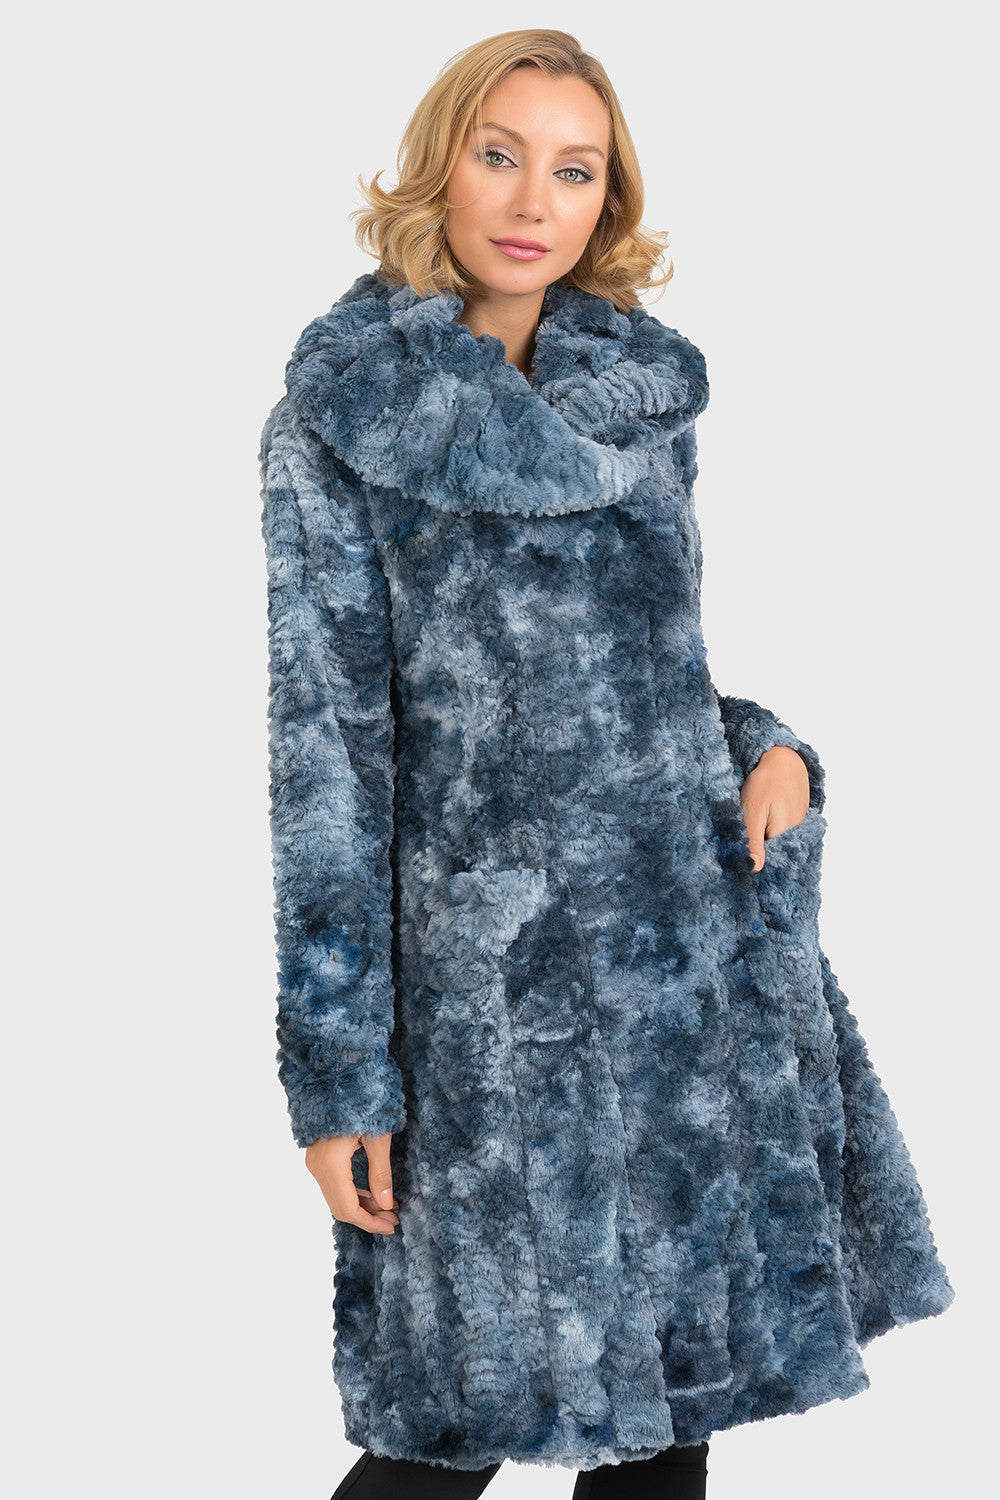 JOSEPH RIBKOFF BLUE FUR COAT - SIZE 12